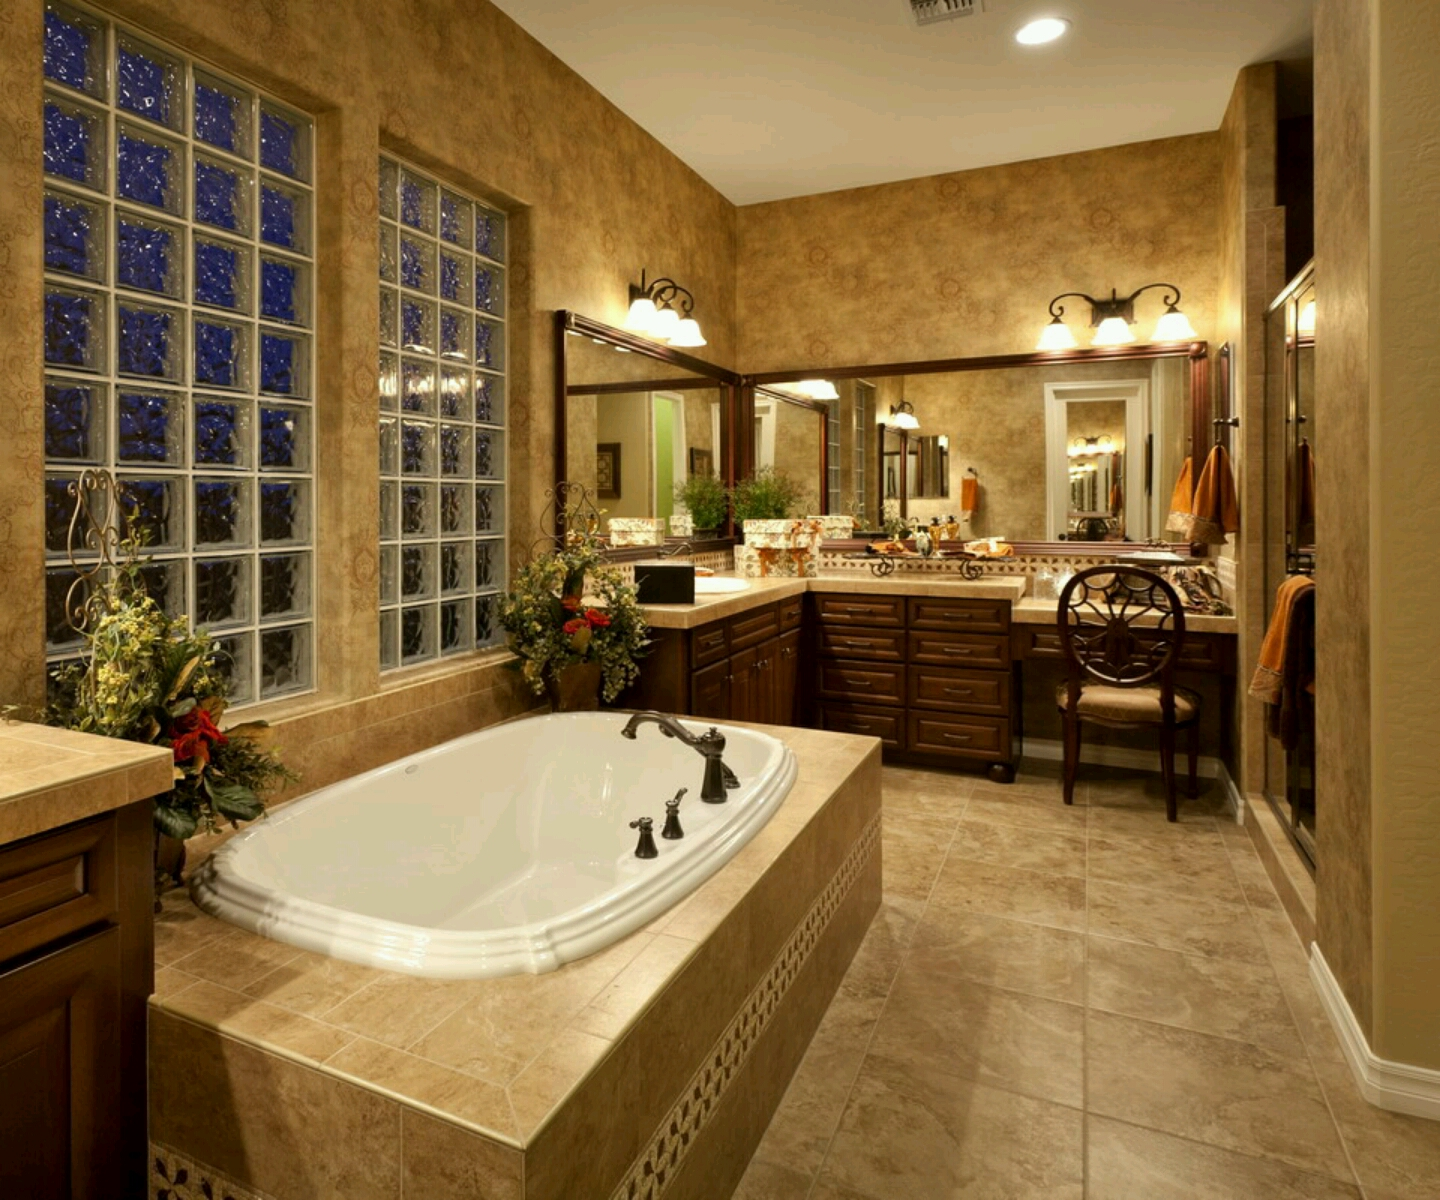 Luxury modern bathrooms designs ideas furniture gallery for Small luxury bathrooms ideas